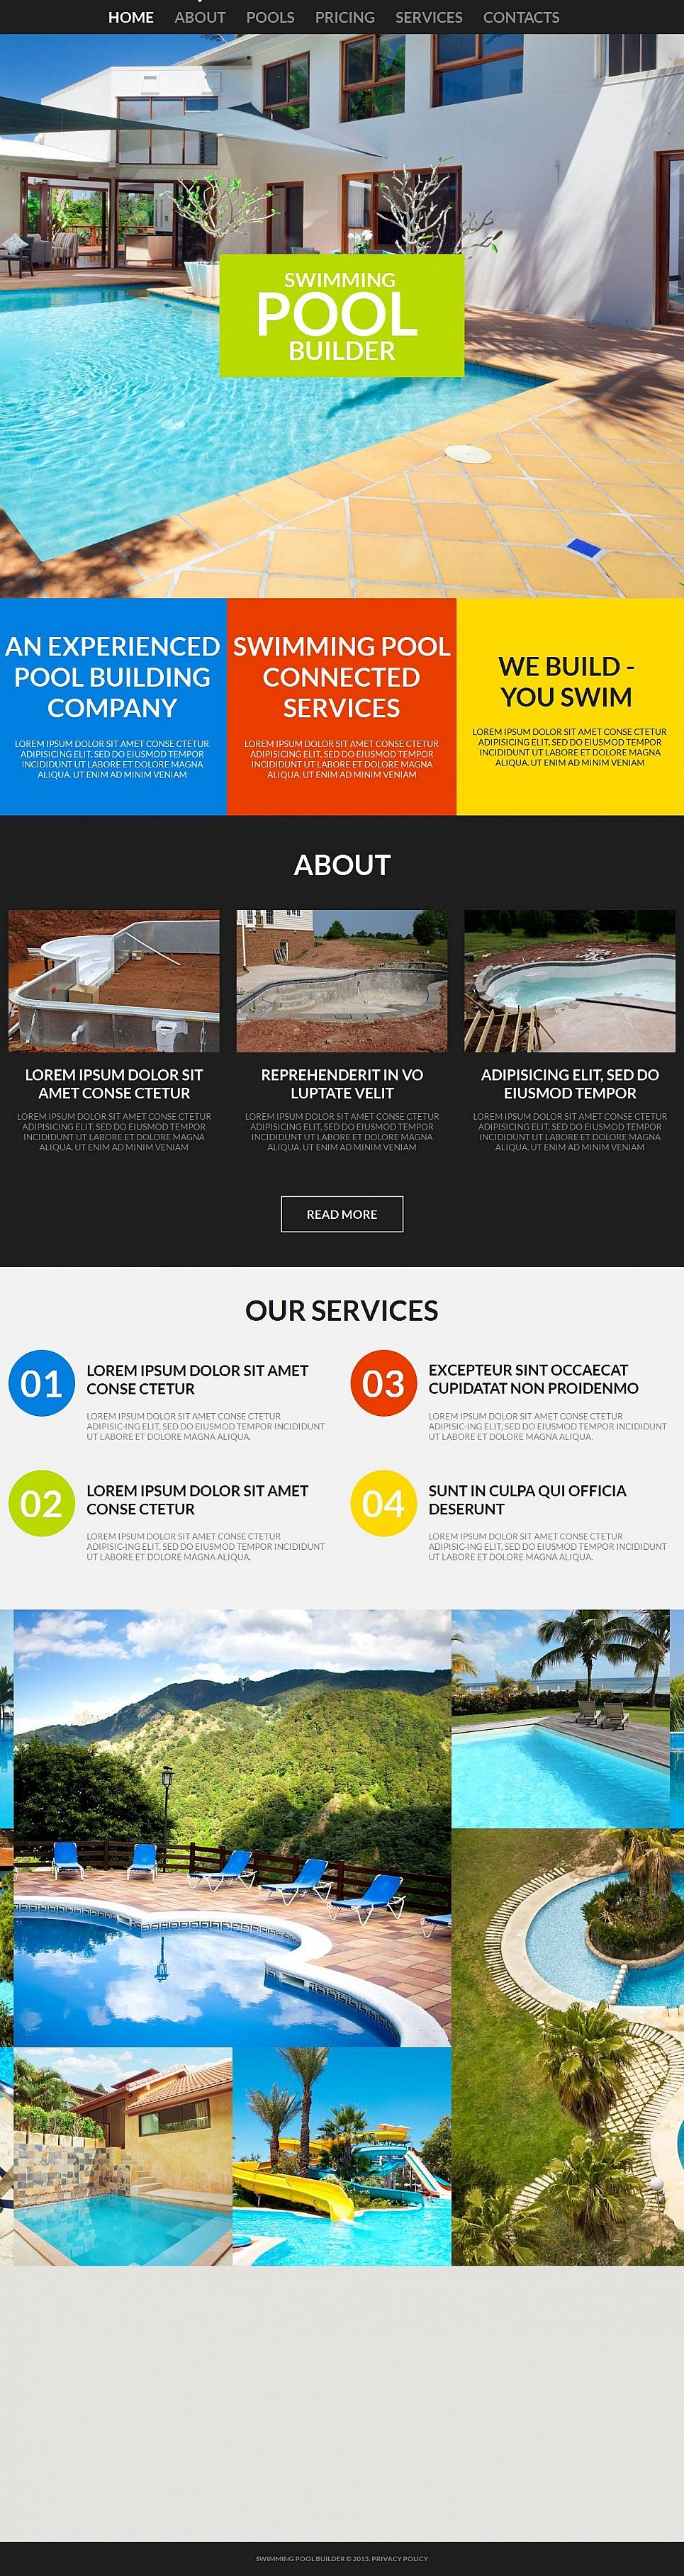 Swimming Pools Website Template - image